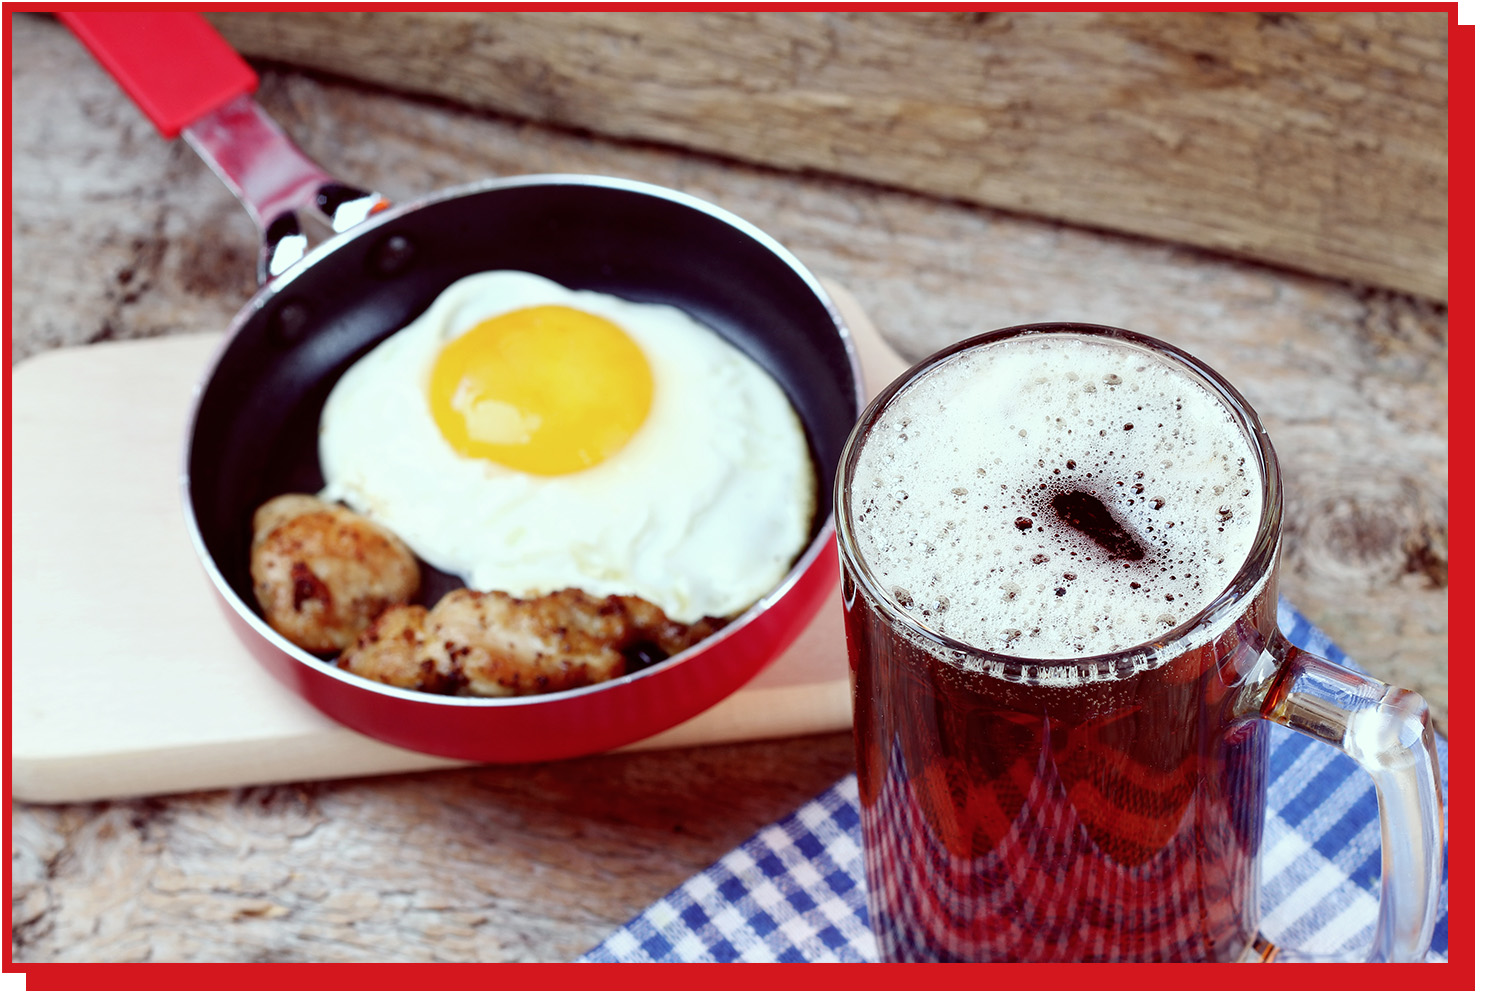 Pint of beer next to a small skillet containing fried egg and breakfast sausage.